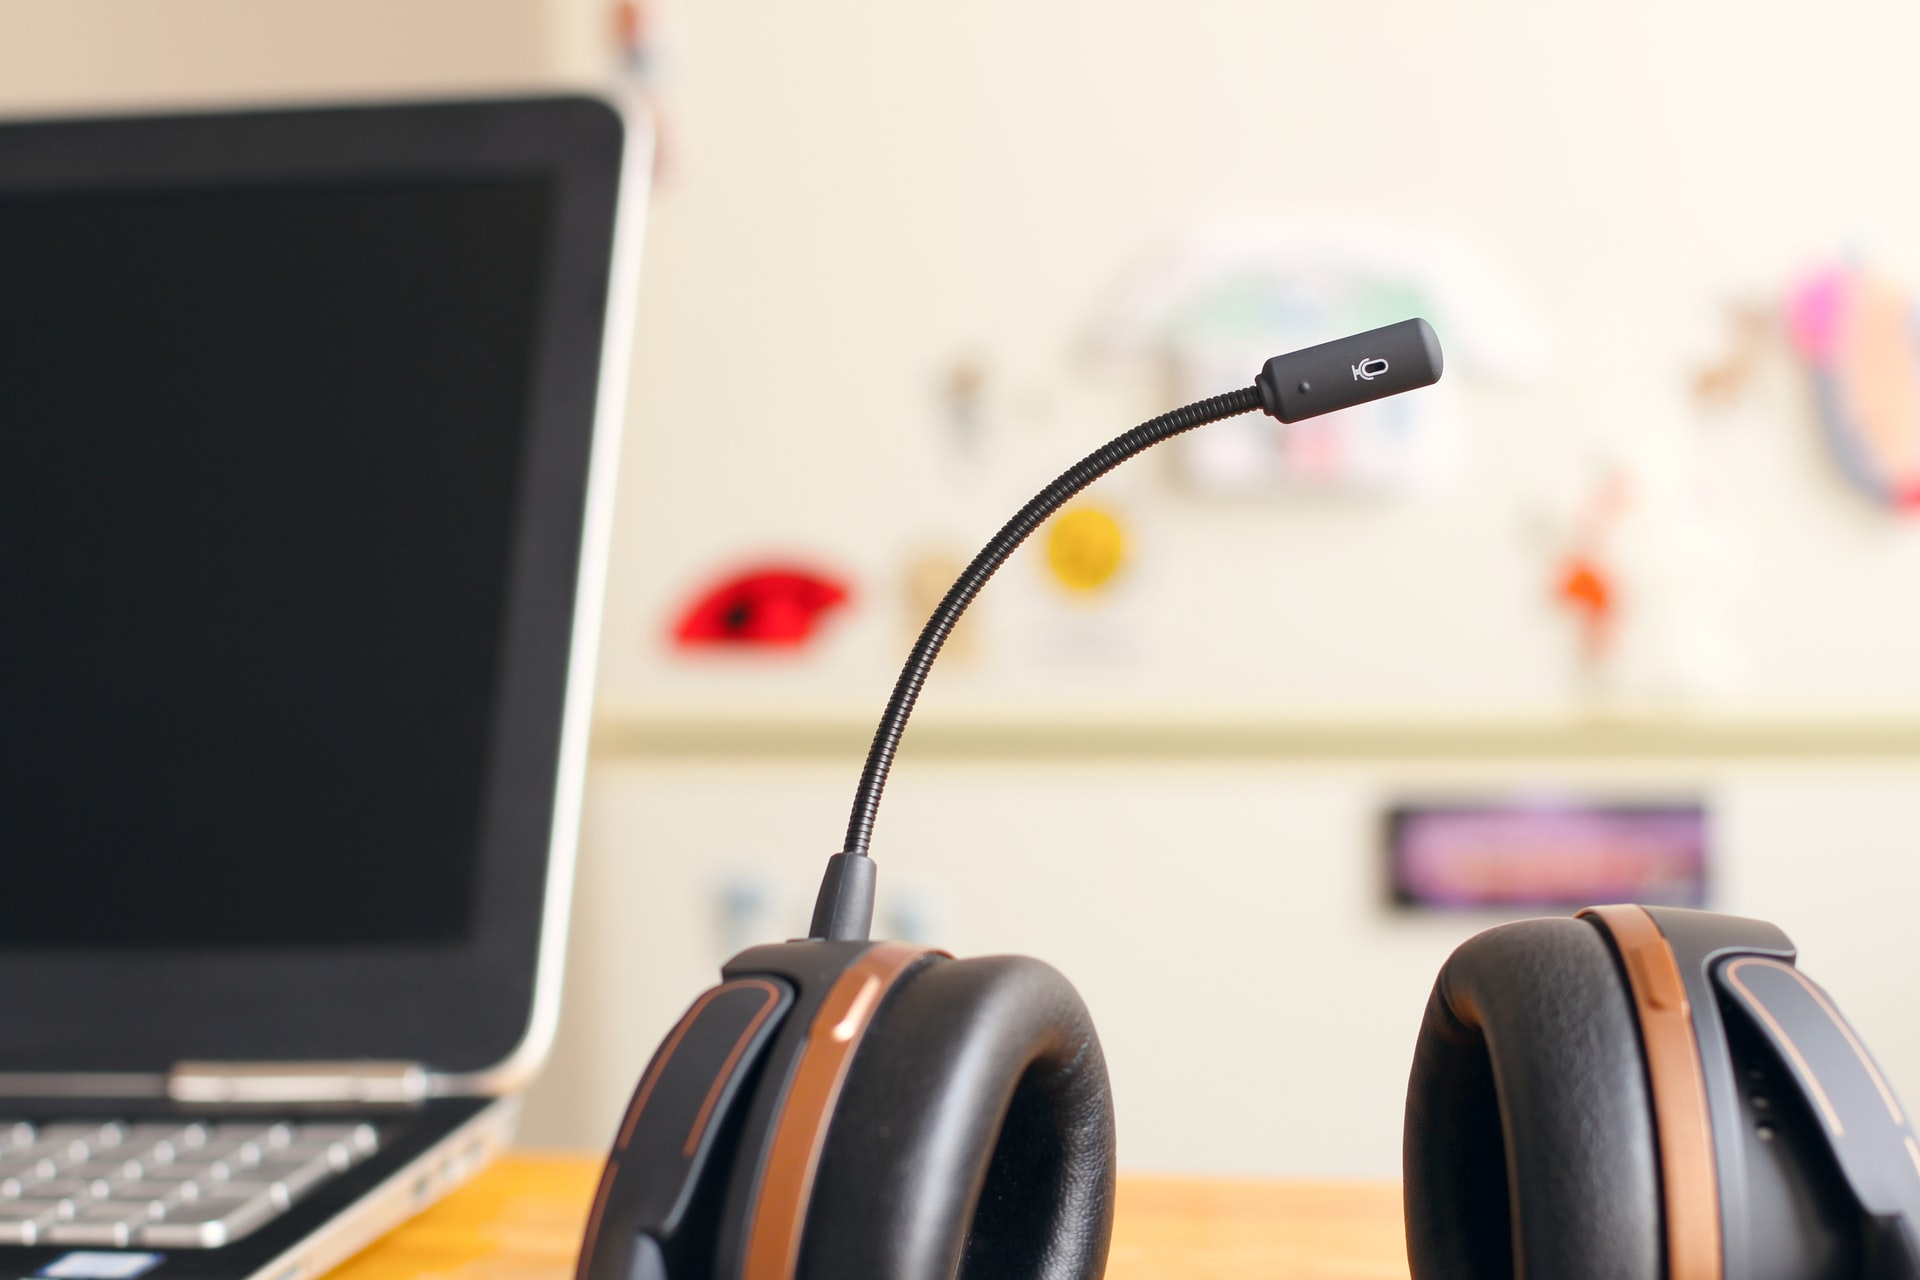 Headset with microphone and a computer in the background